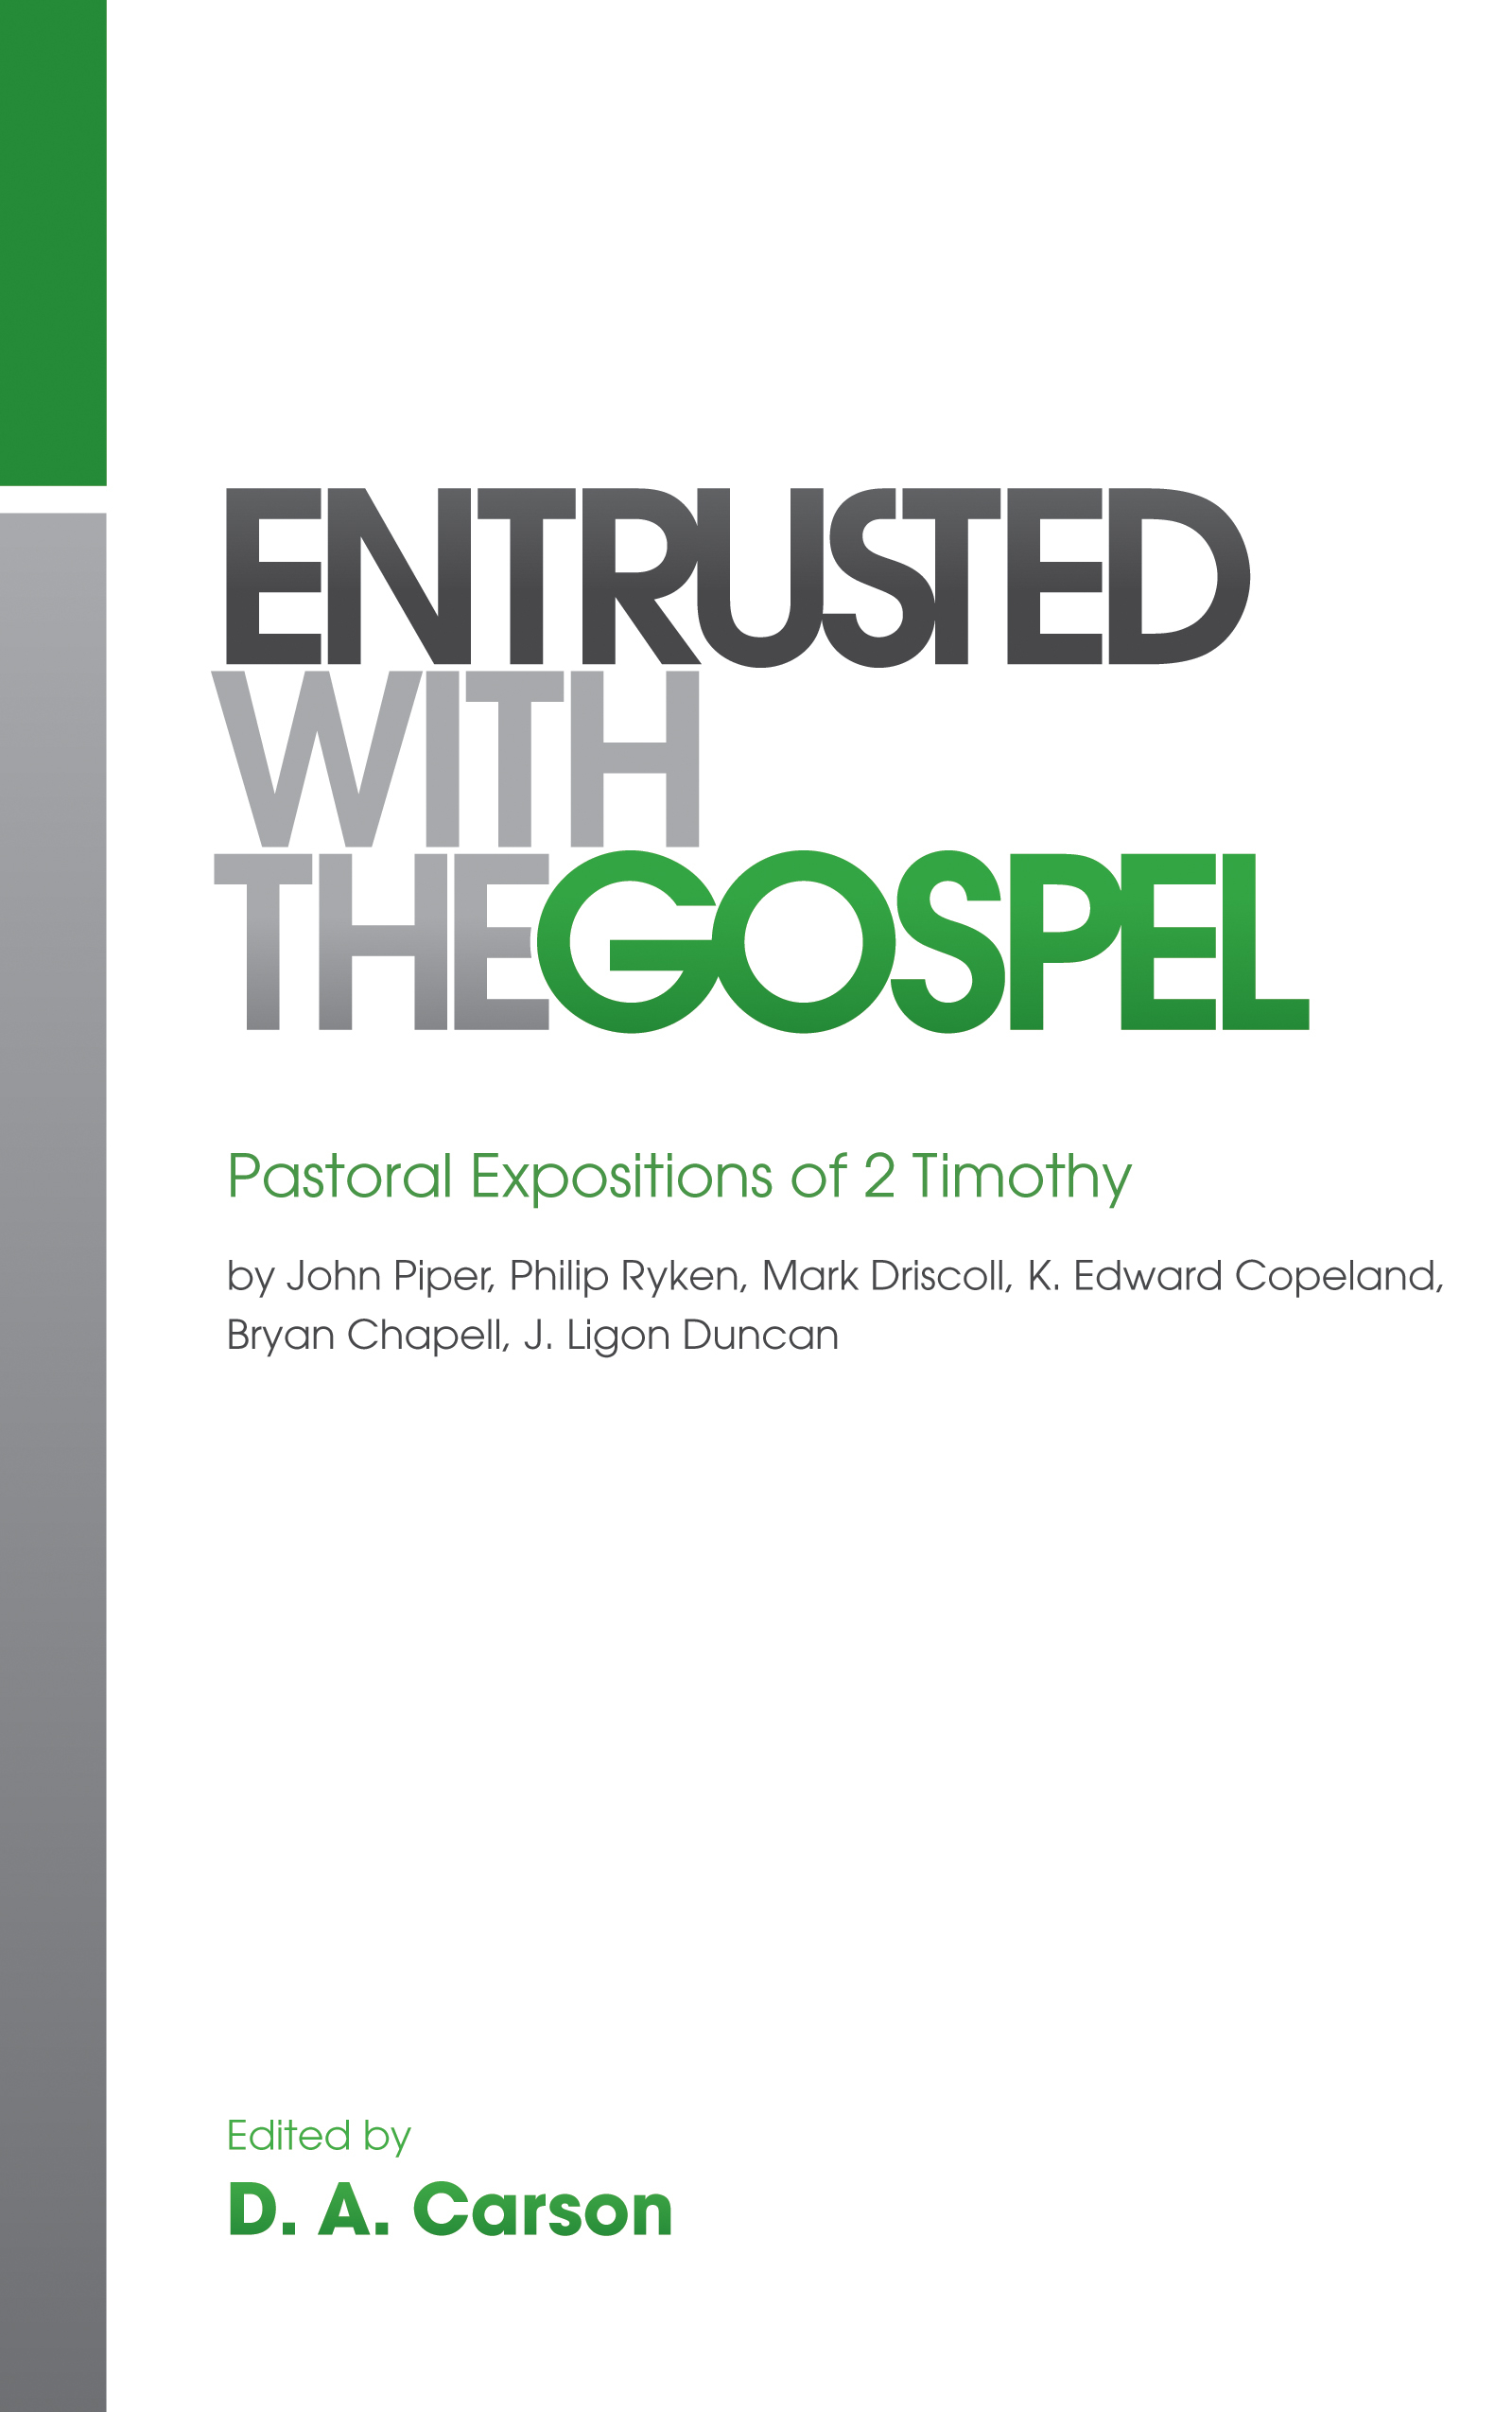 Entrusted with the Gospel Pastoral Expositions of 2 Timothy by John Piper, Philip Ryken, Mark Driscoll, K. Edward Copeland, Bryan Chapell, J. Ligon Duncan